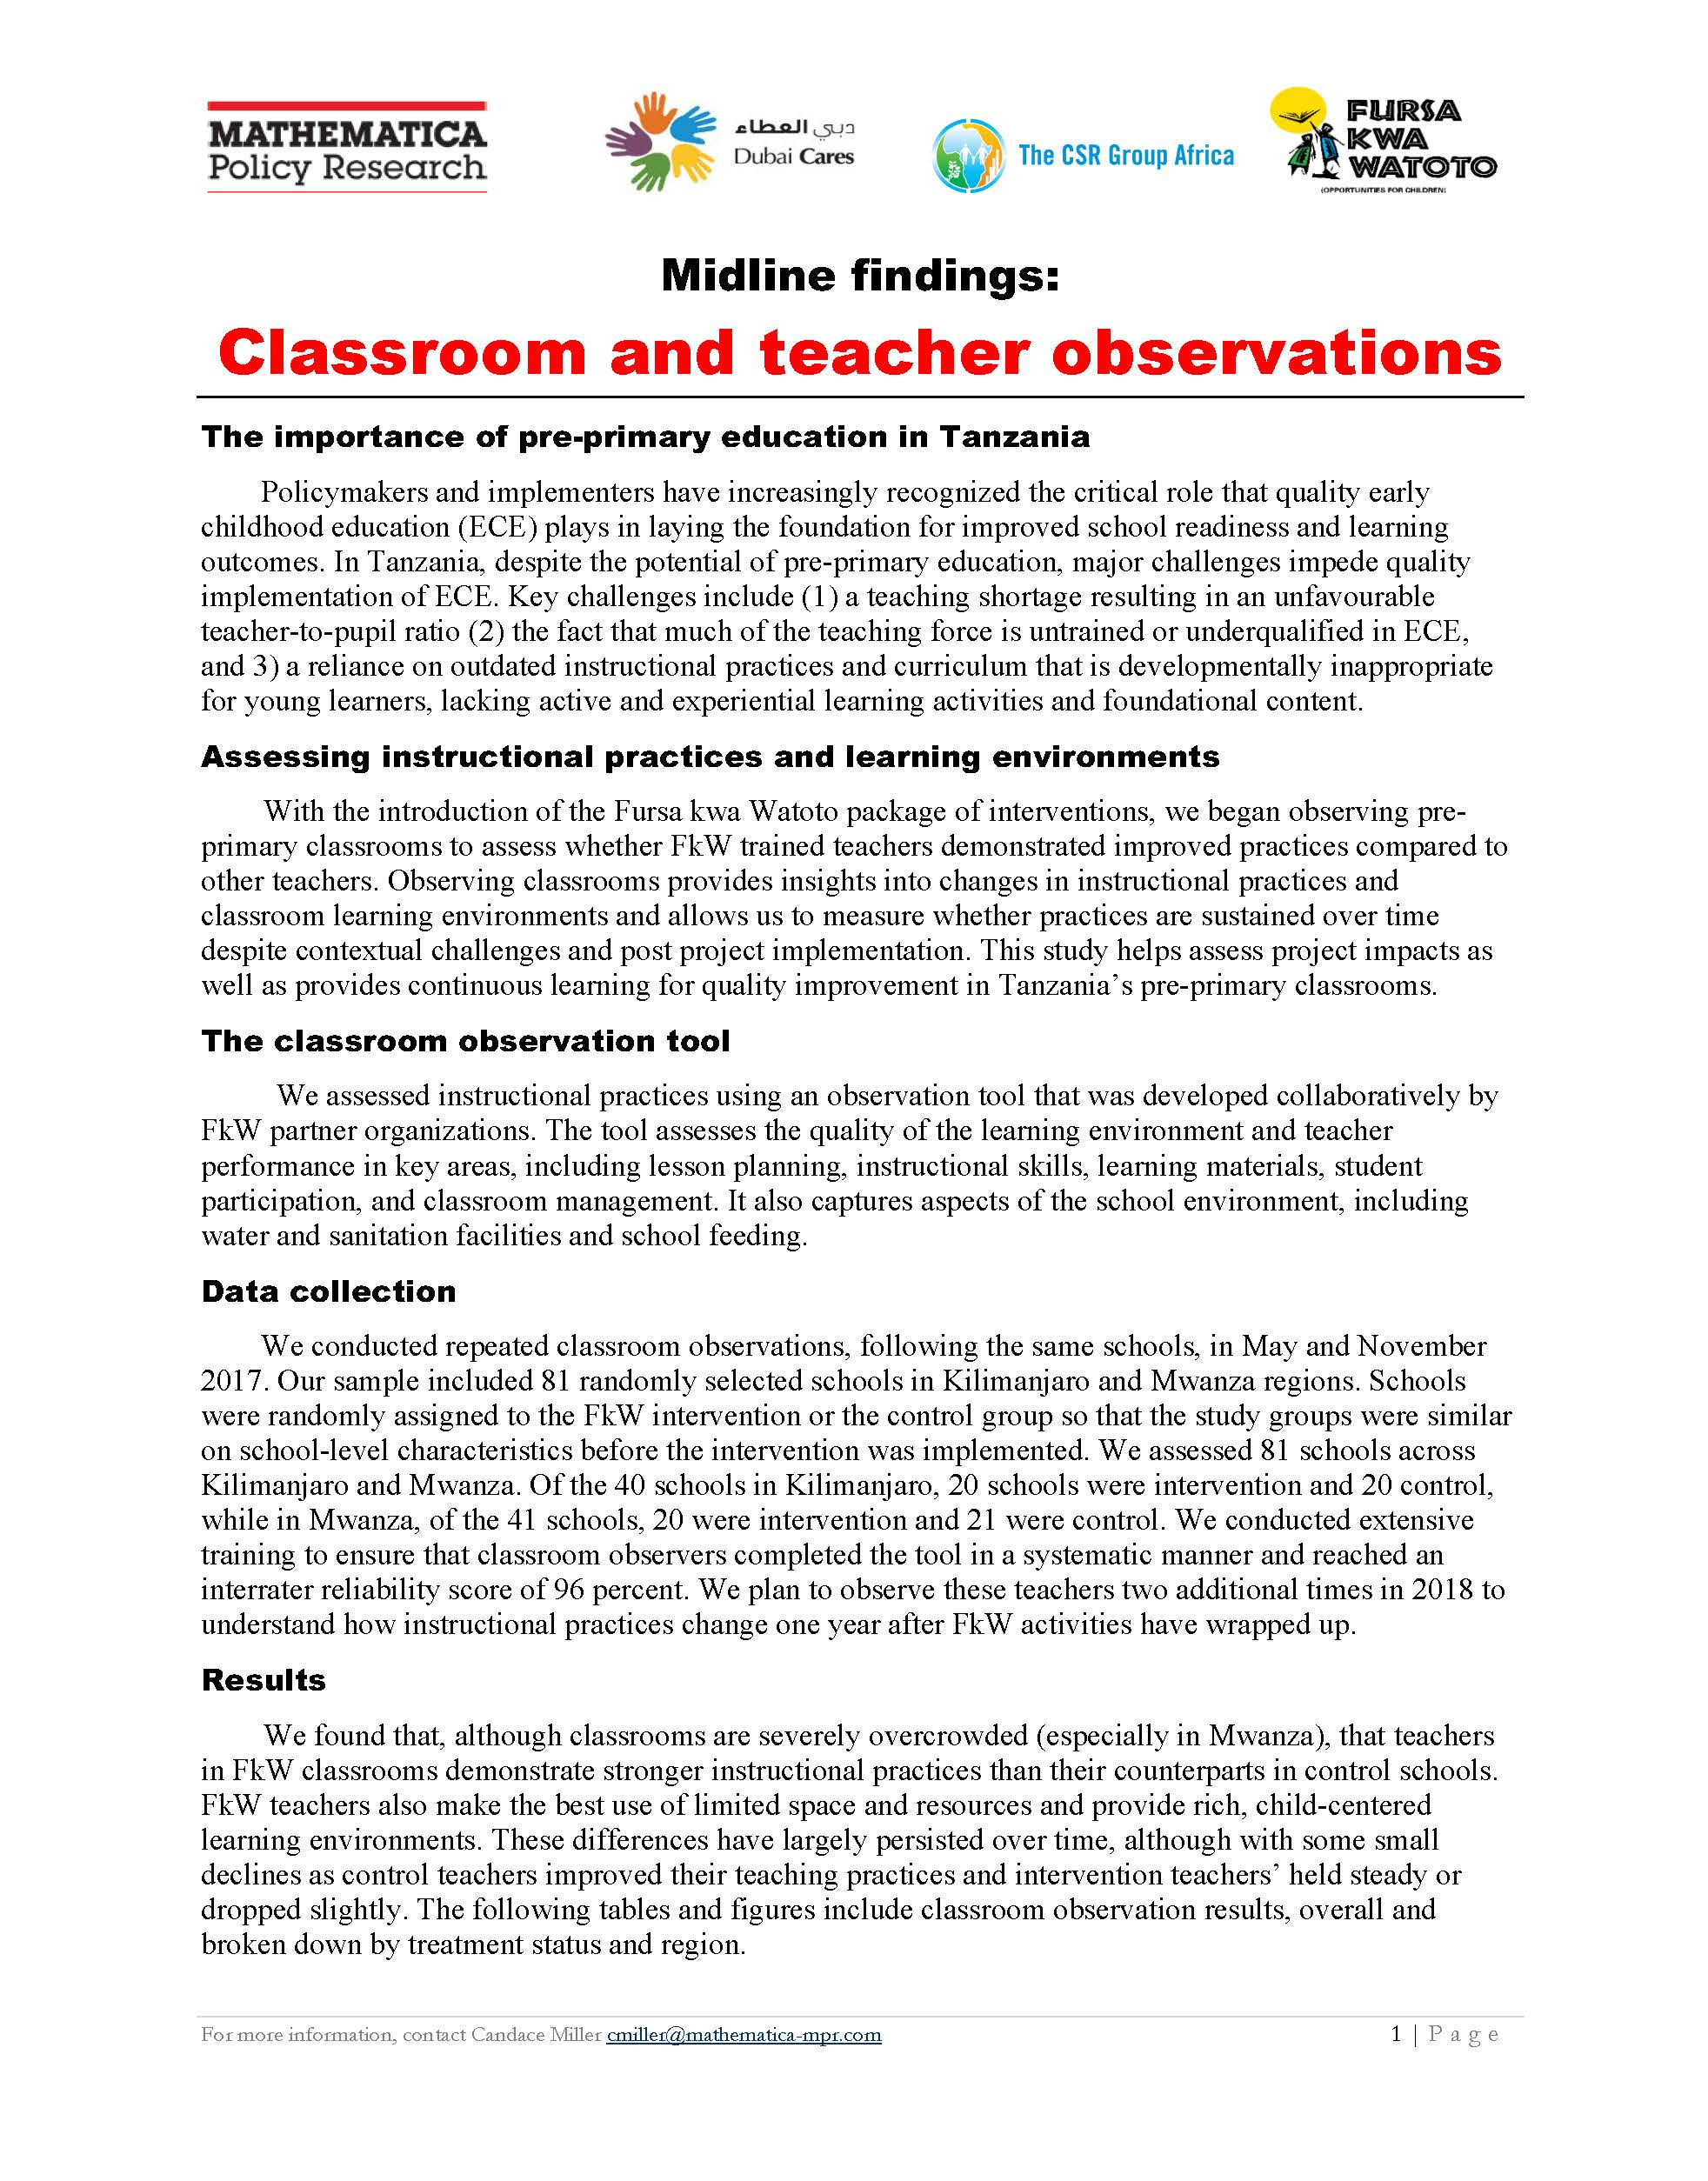 Classroom Observation Results Tables - Learning Agenda